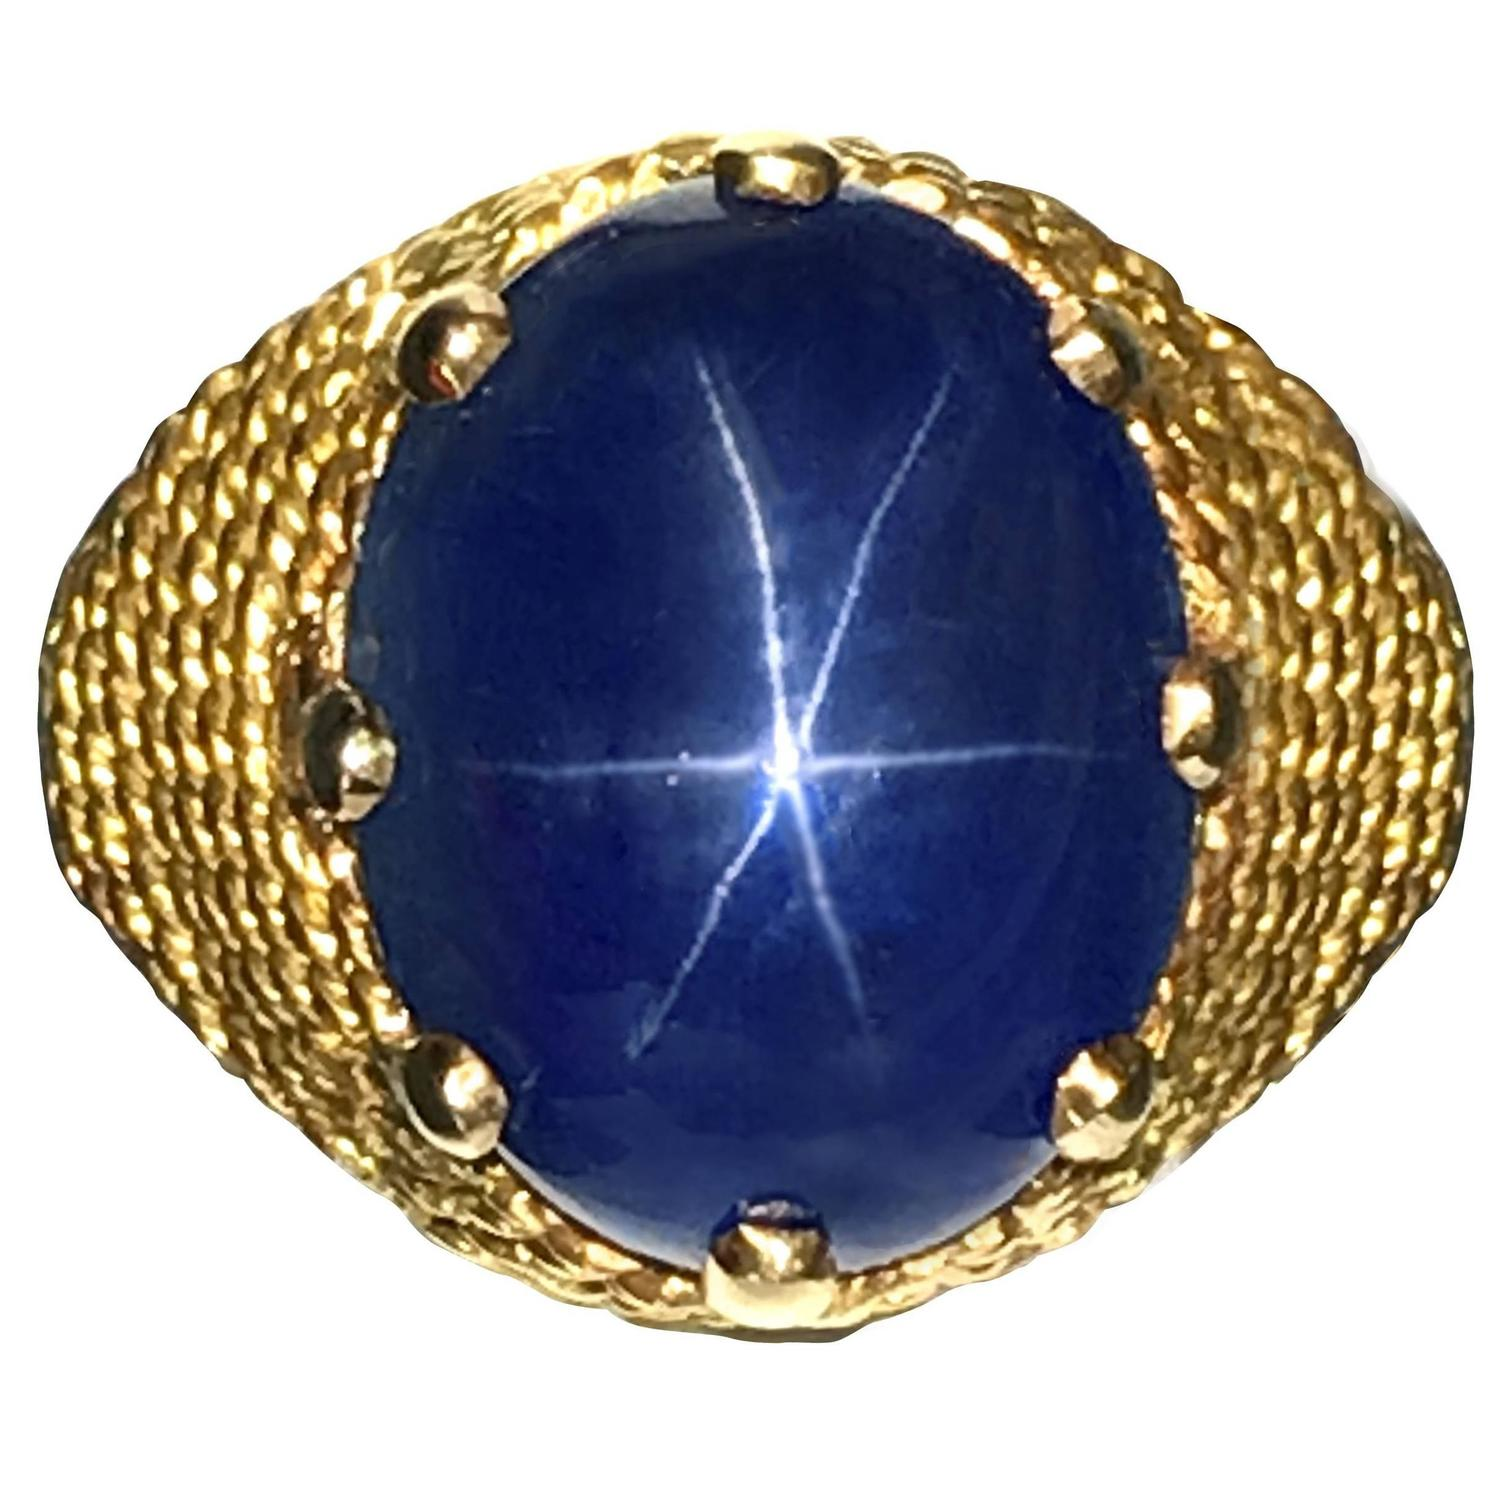 ring diamond vj edwardian filigree to star blue expand full sapphire item click antique gold